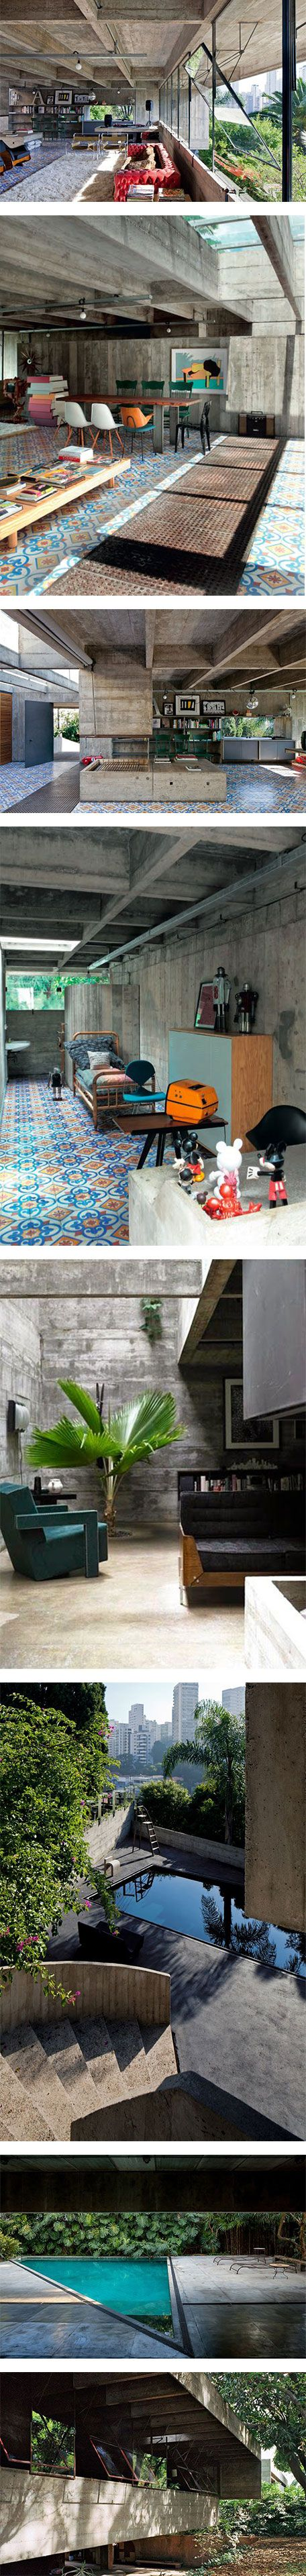 Inside the incredible home of architect Paulo Mendes da Rocha in Brazil on Nuji.com